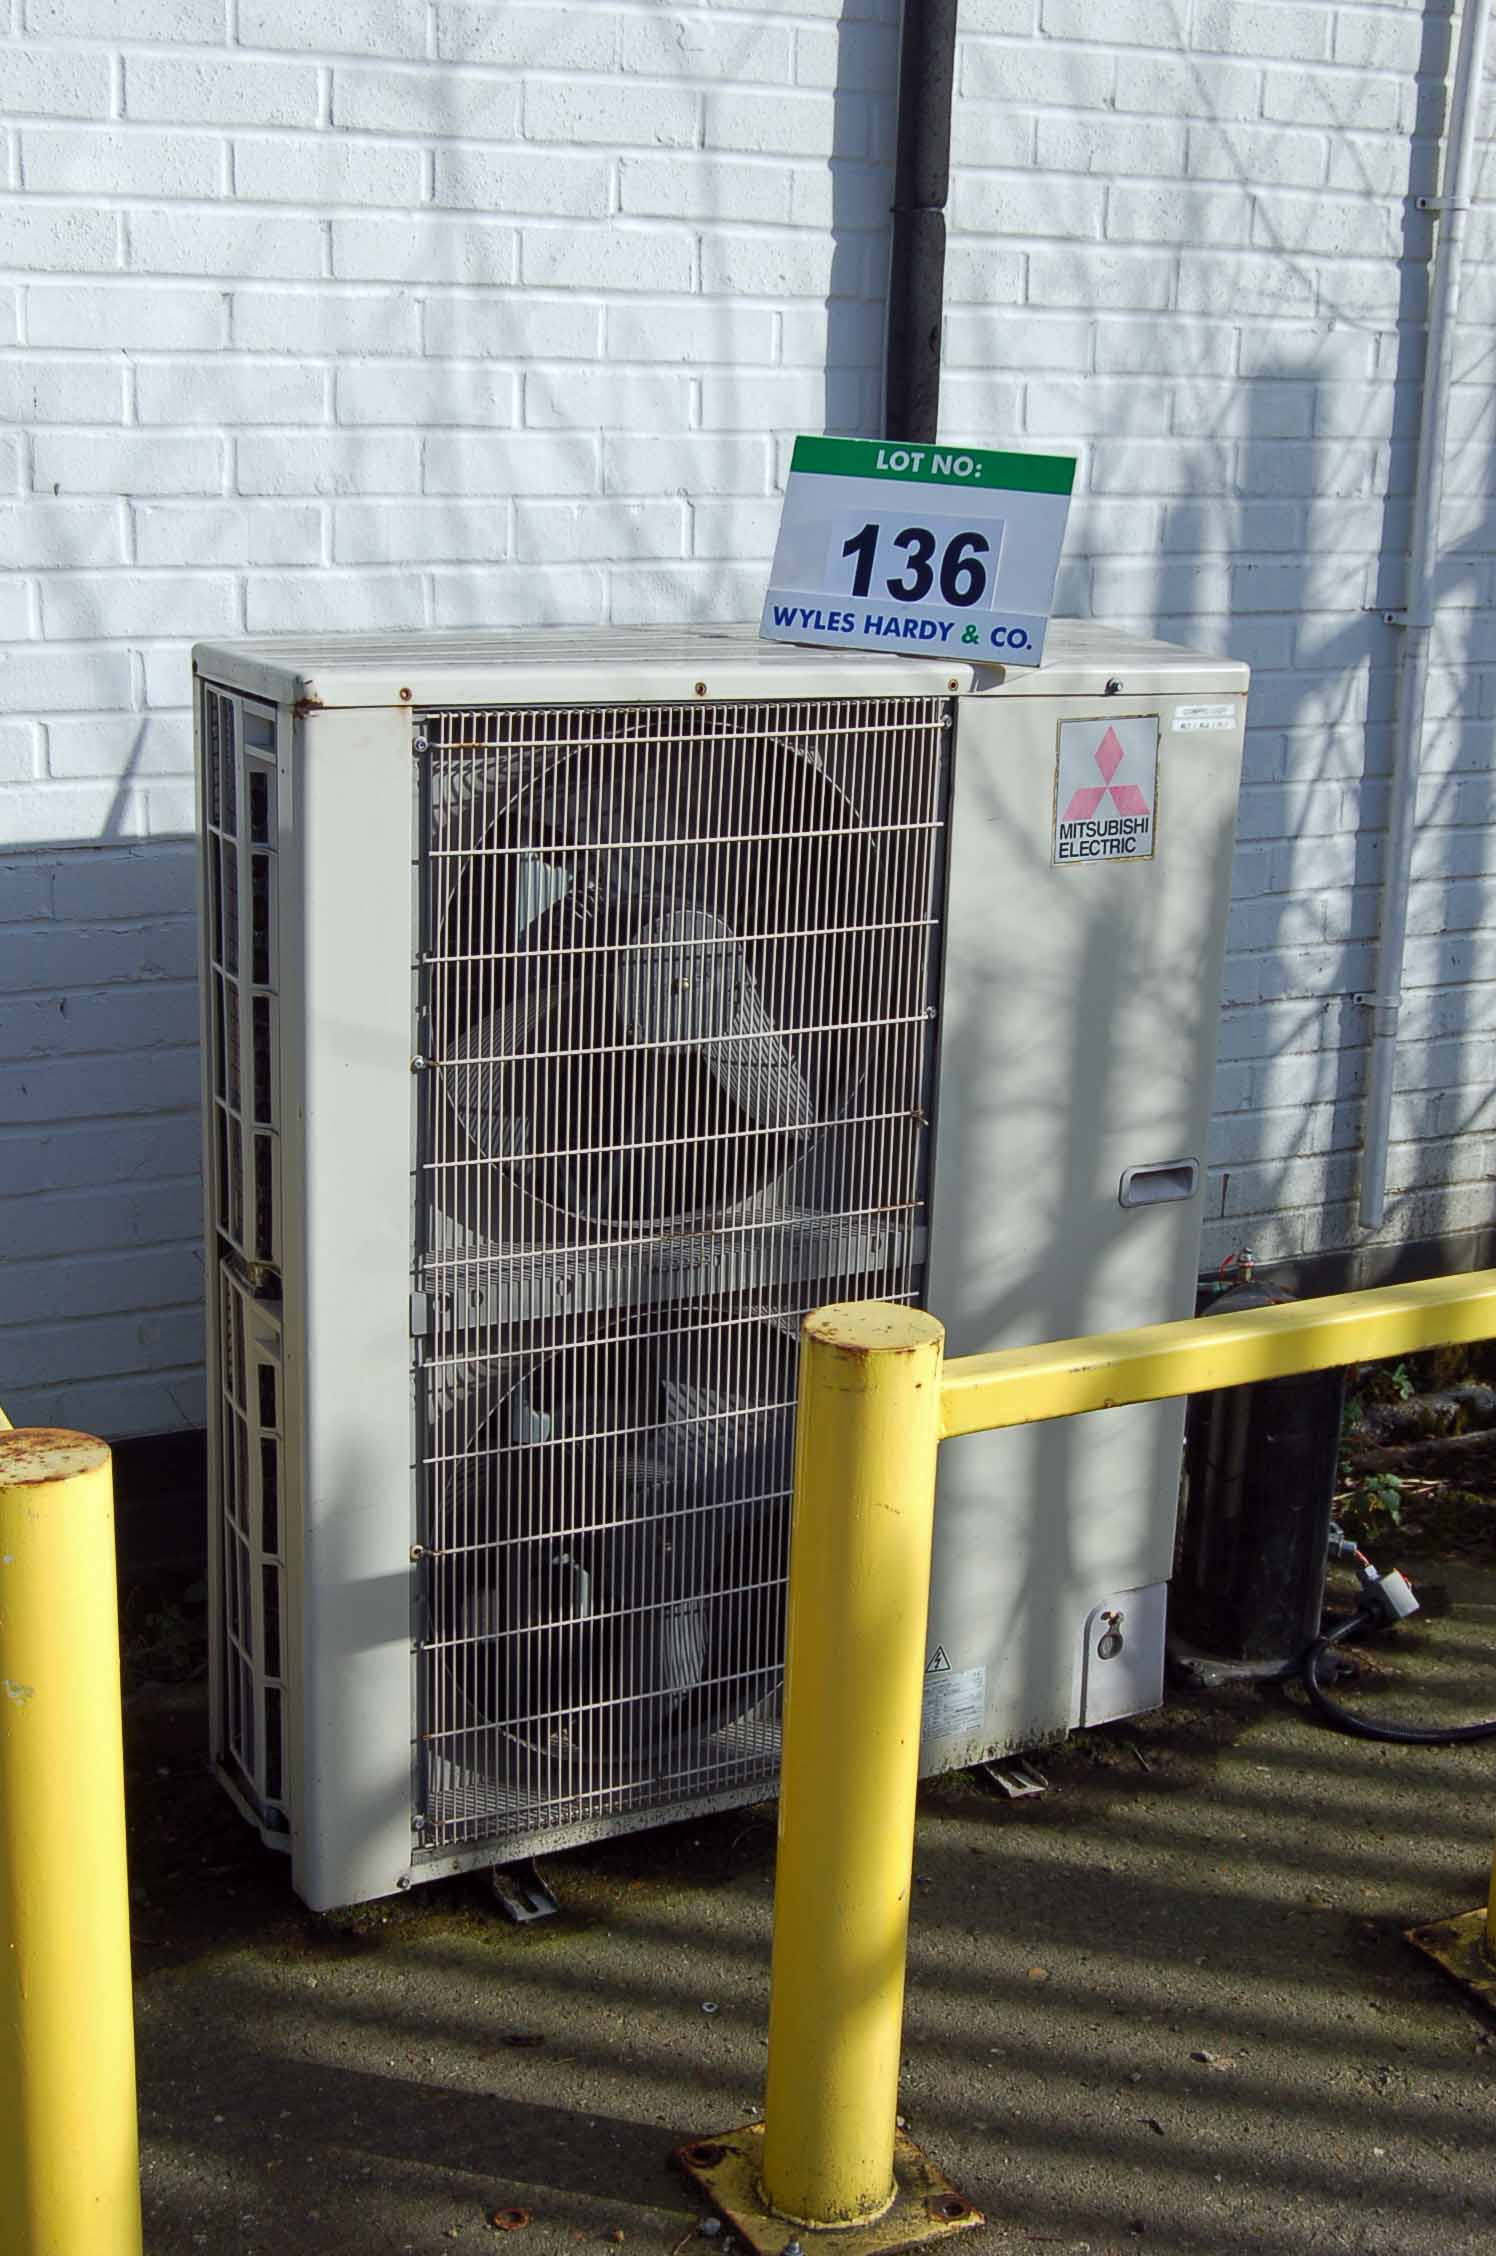 Three SEARLE GEA Twin Fan Ceiling mounted Freezer Evaporator Units (Unit 18) and A MITSUBISHI Twin